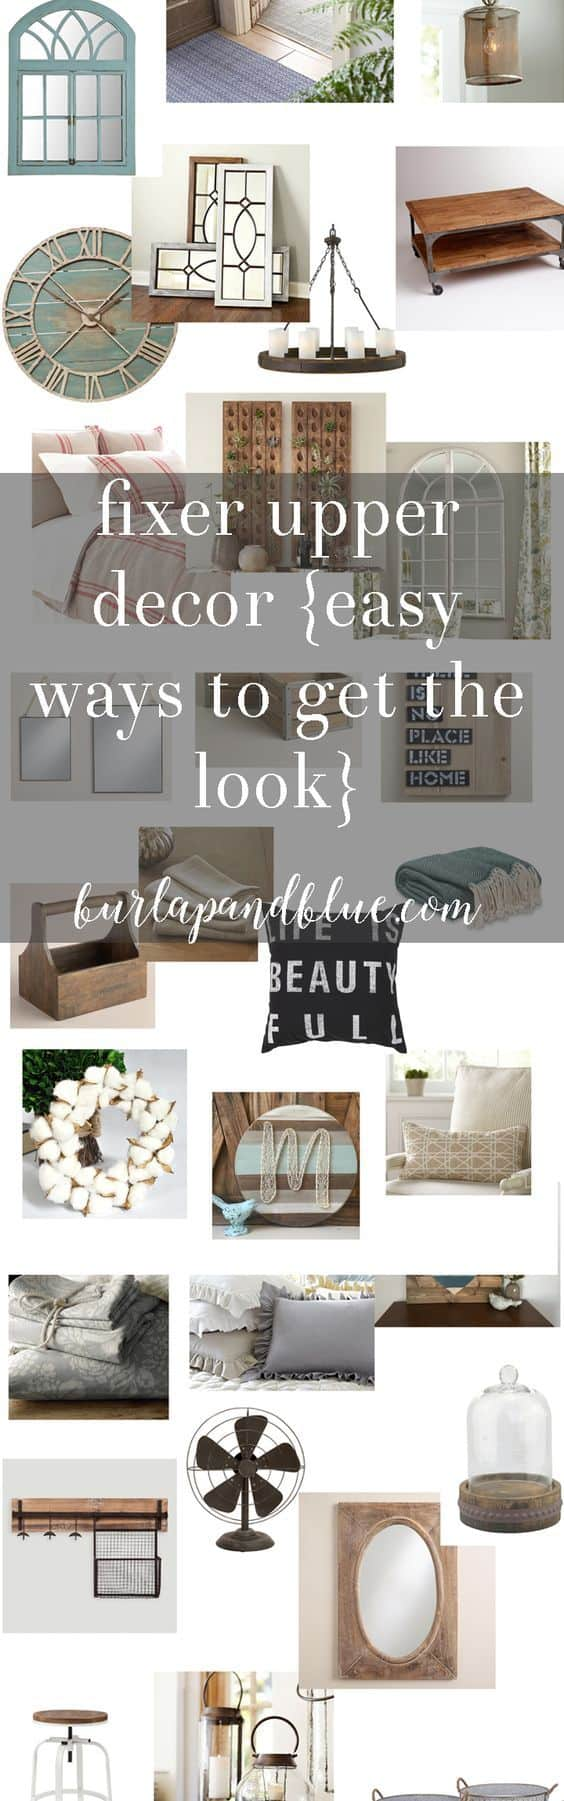 get the fixer upper look | fixer upper style